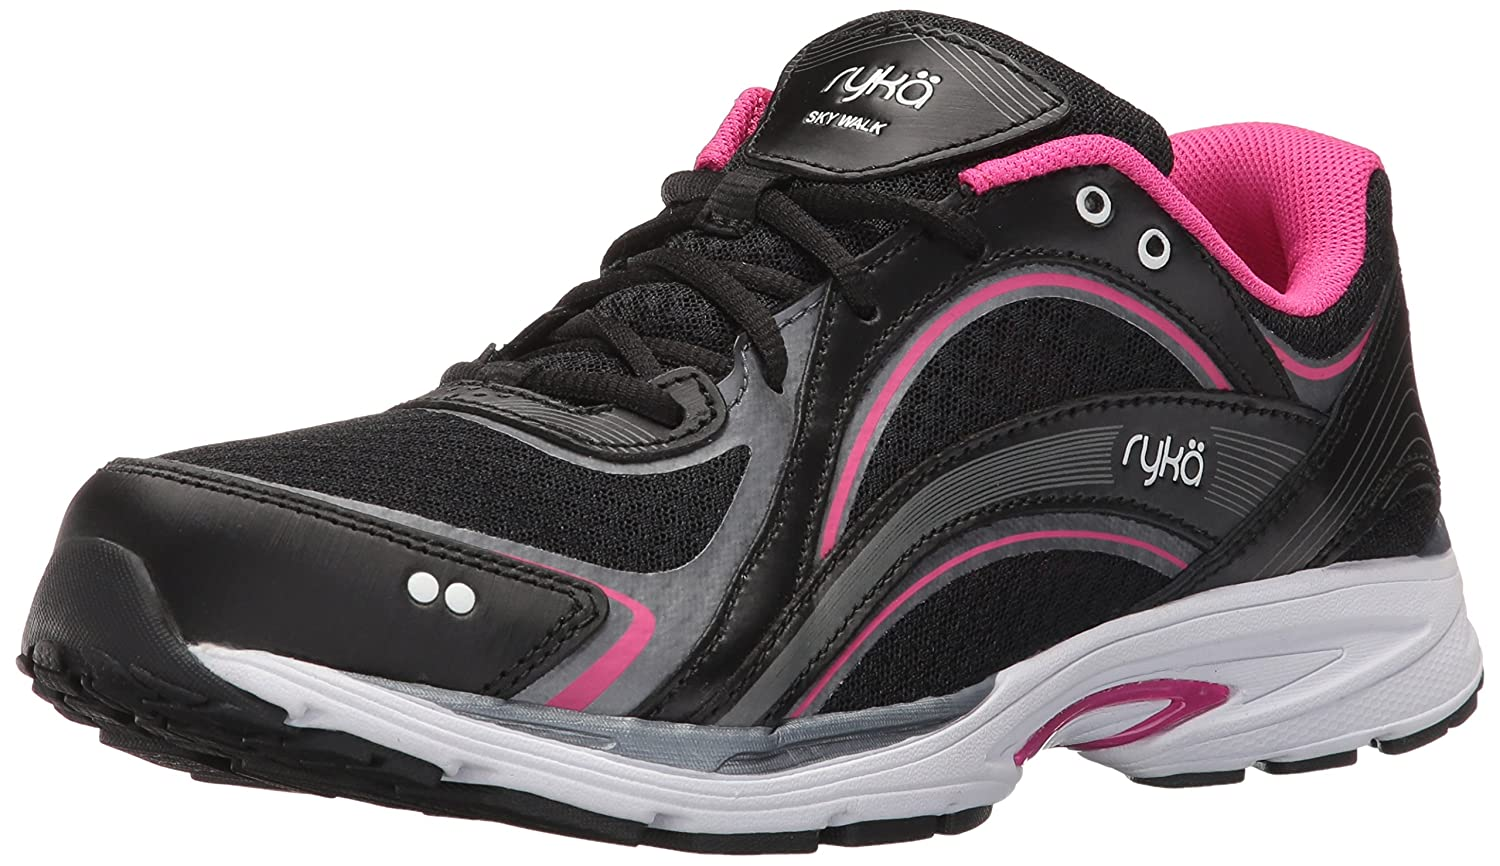 Ryka Women's Sky Walking Shoe B01KWBVEN8 6 W US|Black/Pink